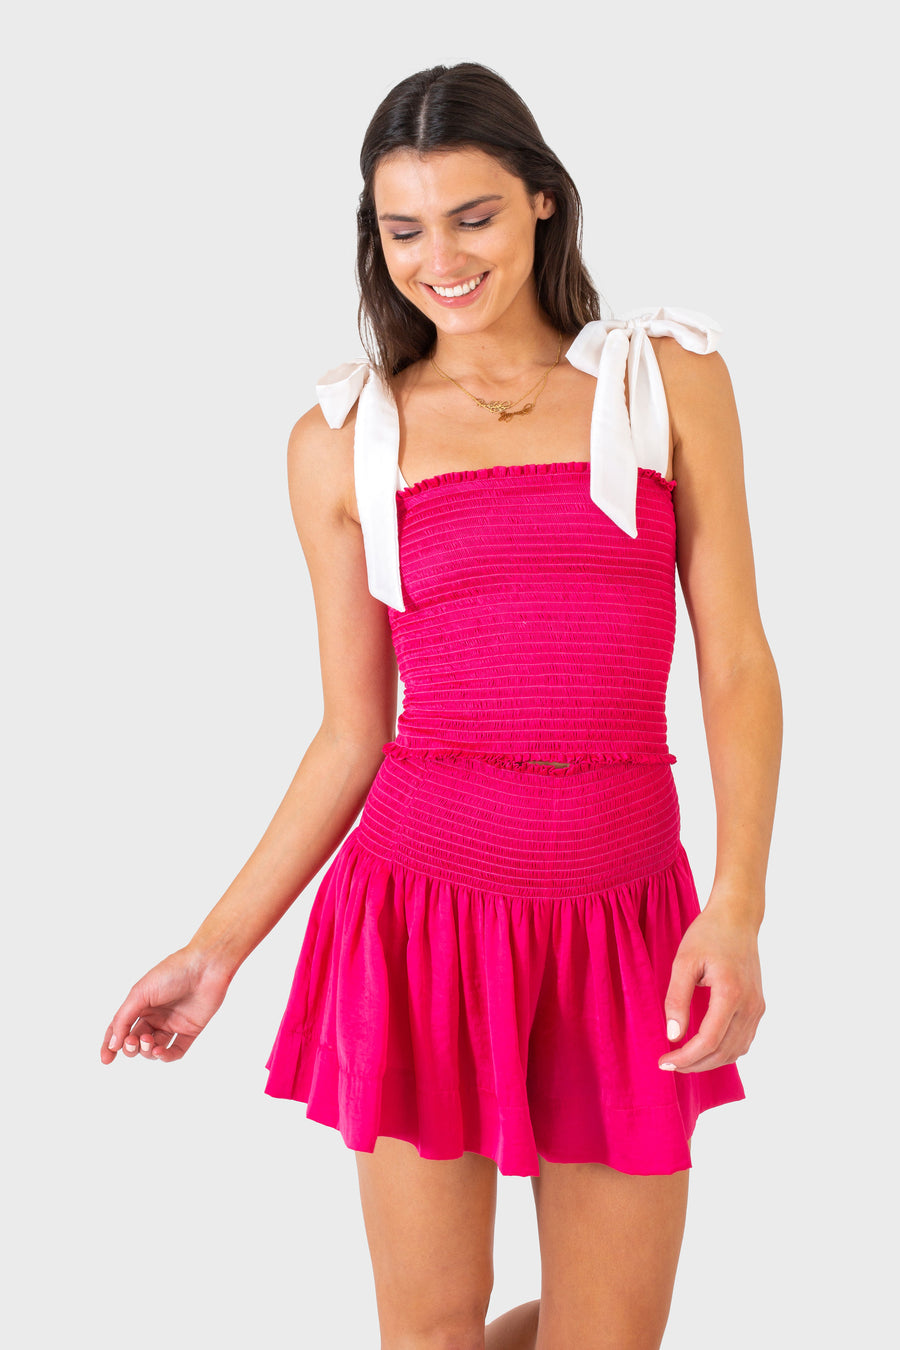 ERICA SKIRT HOT PINK *LIMITED*EDITION*